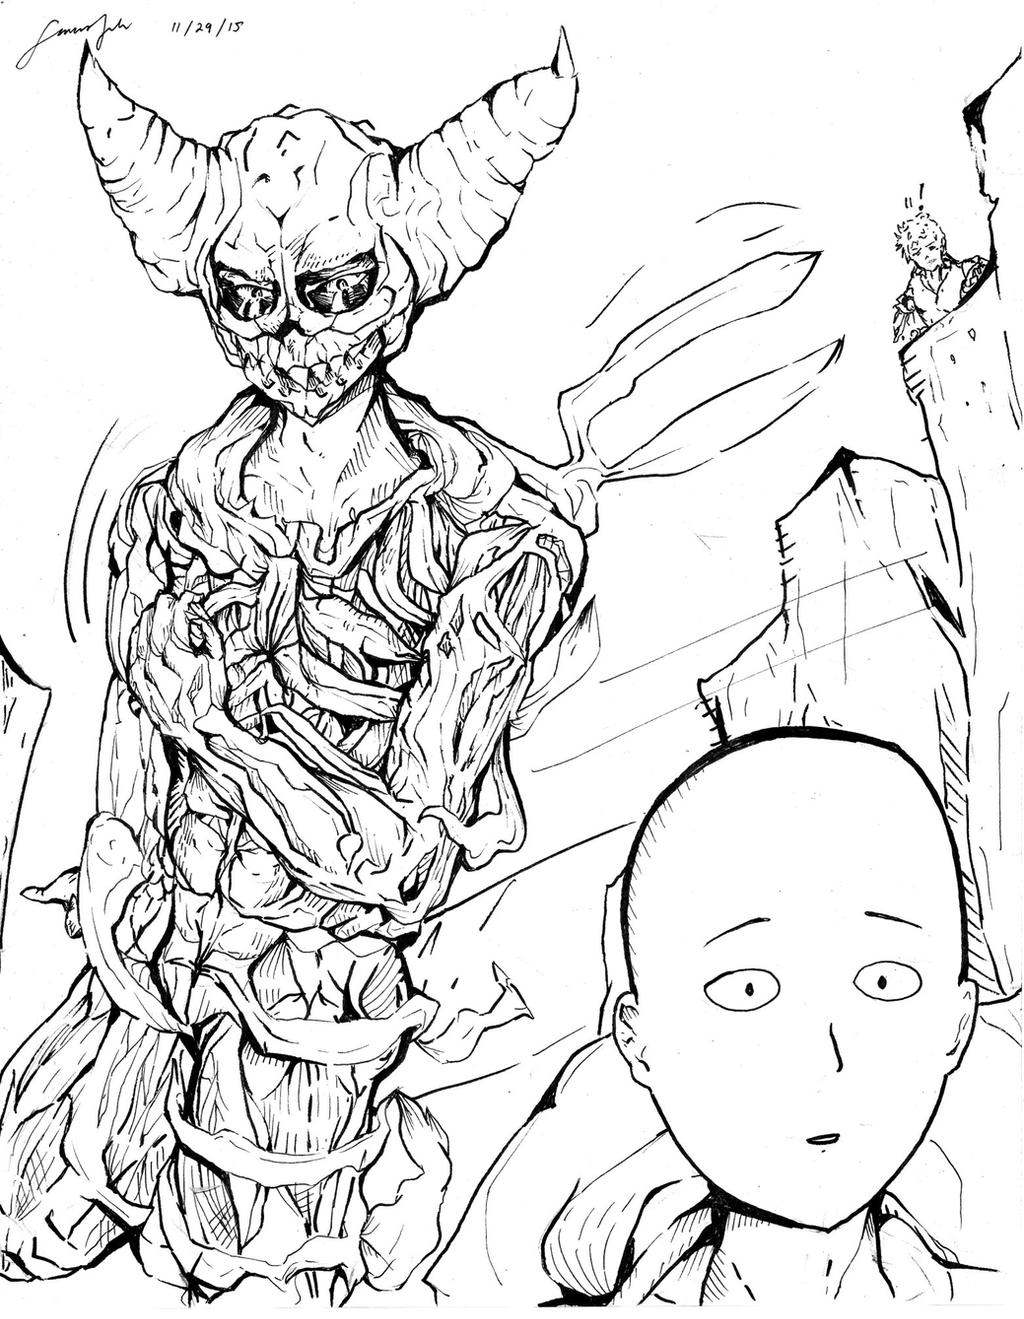 Garou One Punch Man Scanned 575154464 further One Punch Man Sketches 1 568818523 in addition Unfinished Lord Boros Art 487030495 likewise Affiliate News Extra Edition together with More I Drew Erejean For My Friend Because She. on faq opm